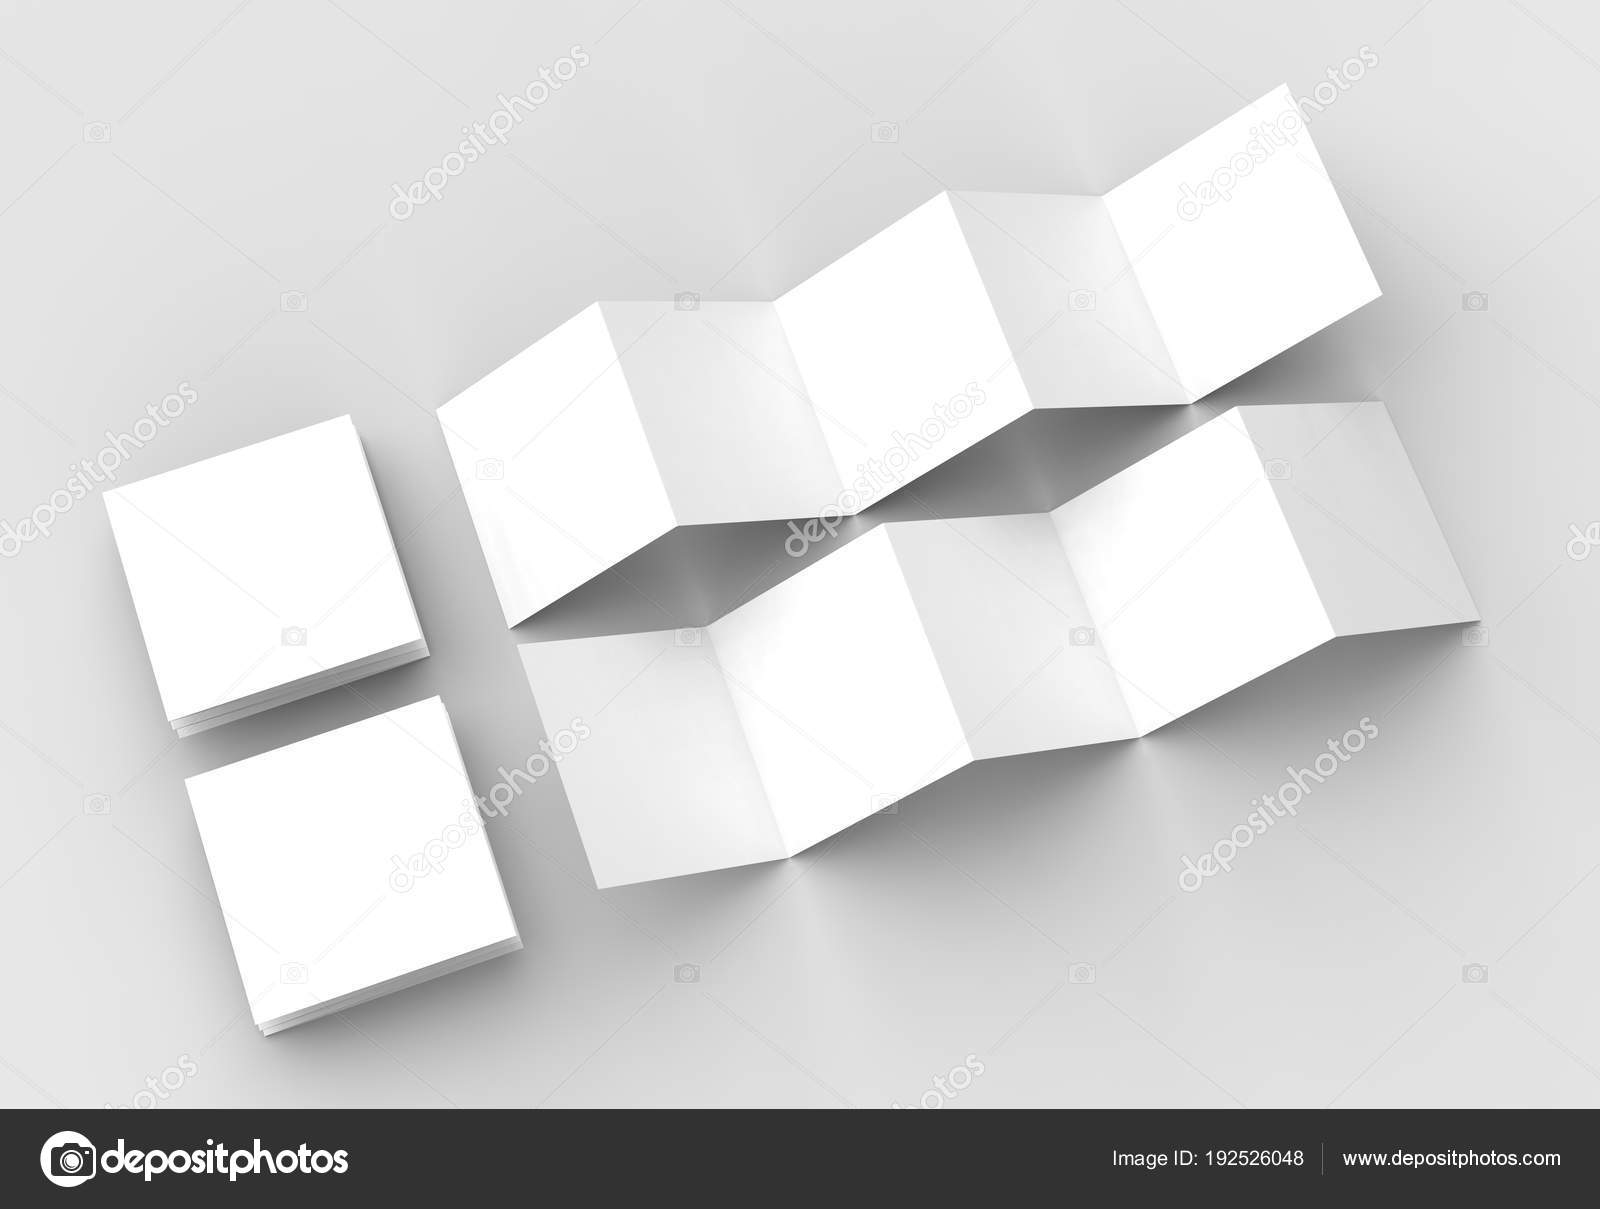 10 page leaflet 5 panel accordion fold square brochure mock up